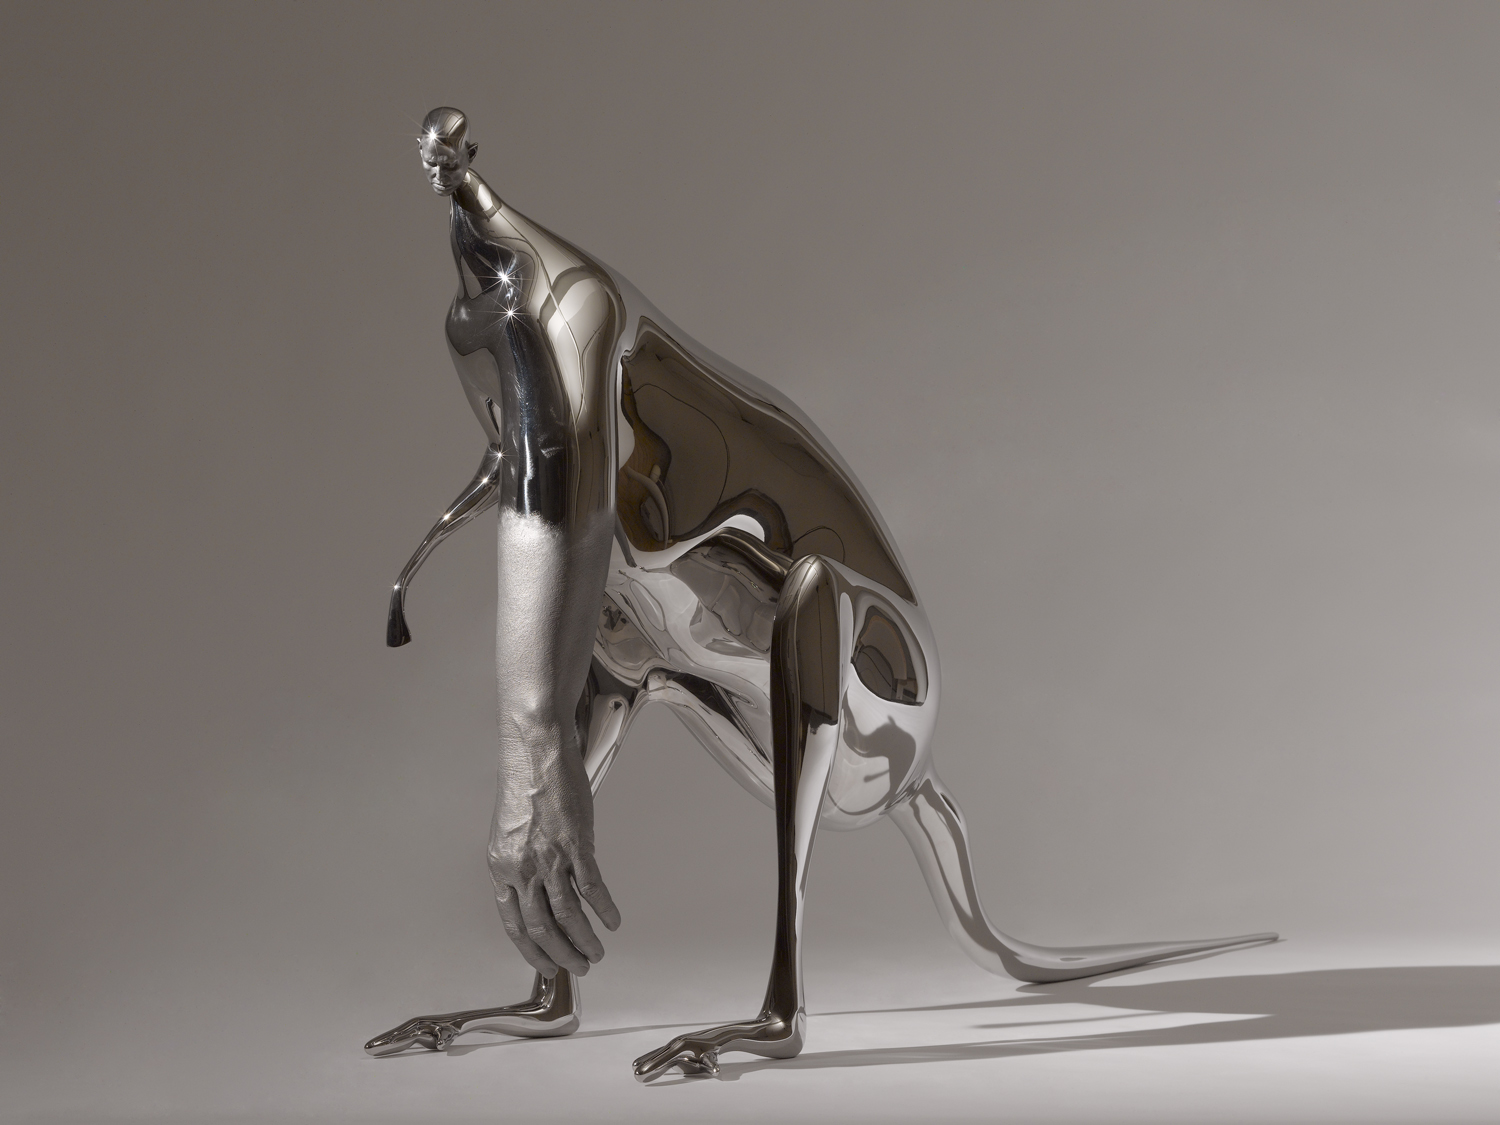 2007-12 Stainless steel Edition of 3 + 1 AP 24 x 44 3/8 x 10 7/8 in (60.96 x 112.71 x 27.62 cm) -  Marc Straus Gallery